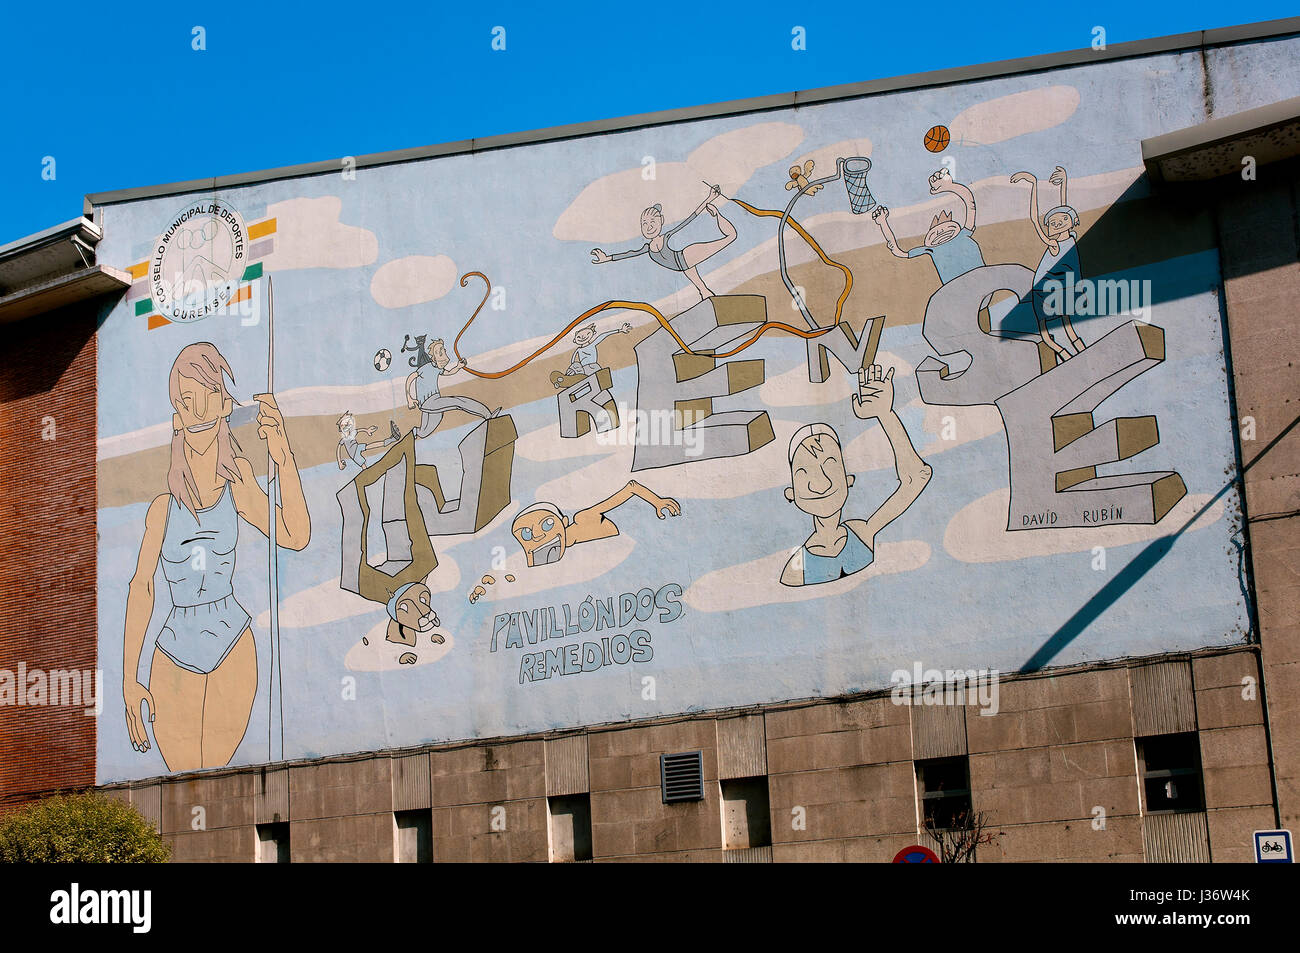 Los Remedios sports pavilion - drawing on the facade, Orense, Region of Galicia, Spain, Europe - Stock Image